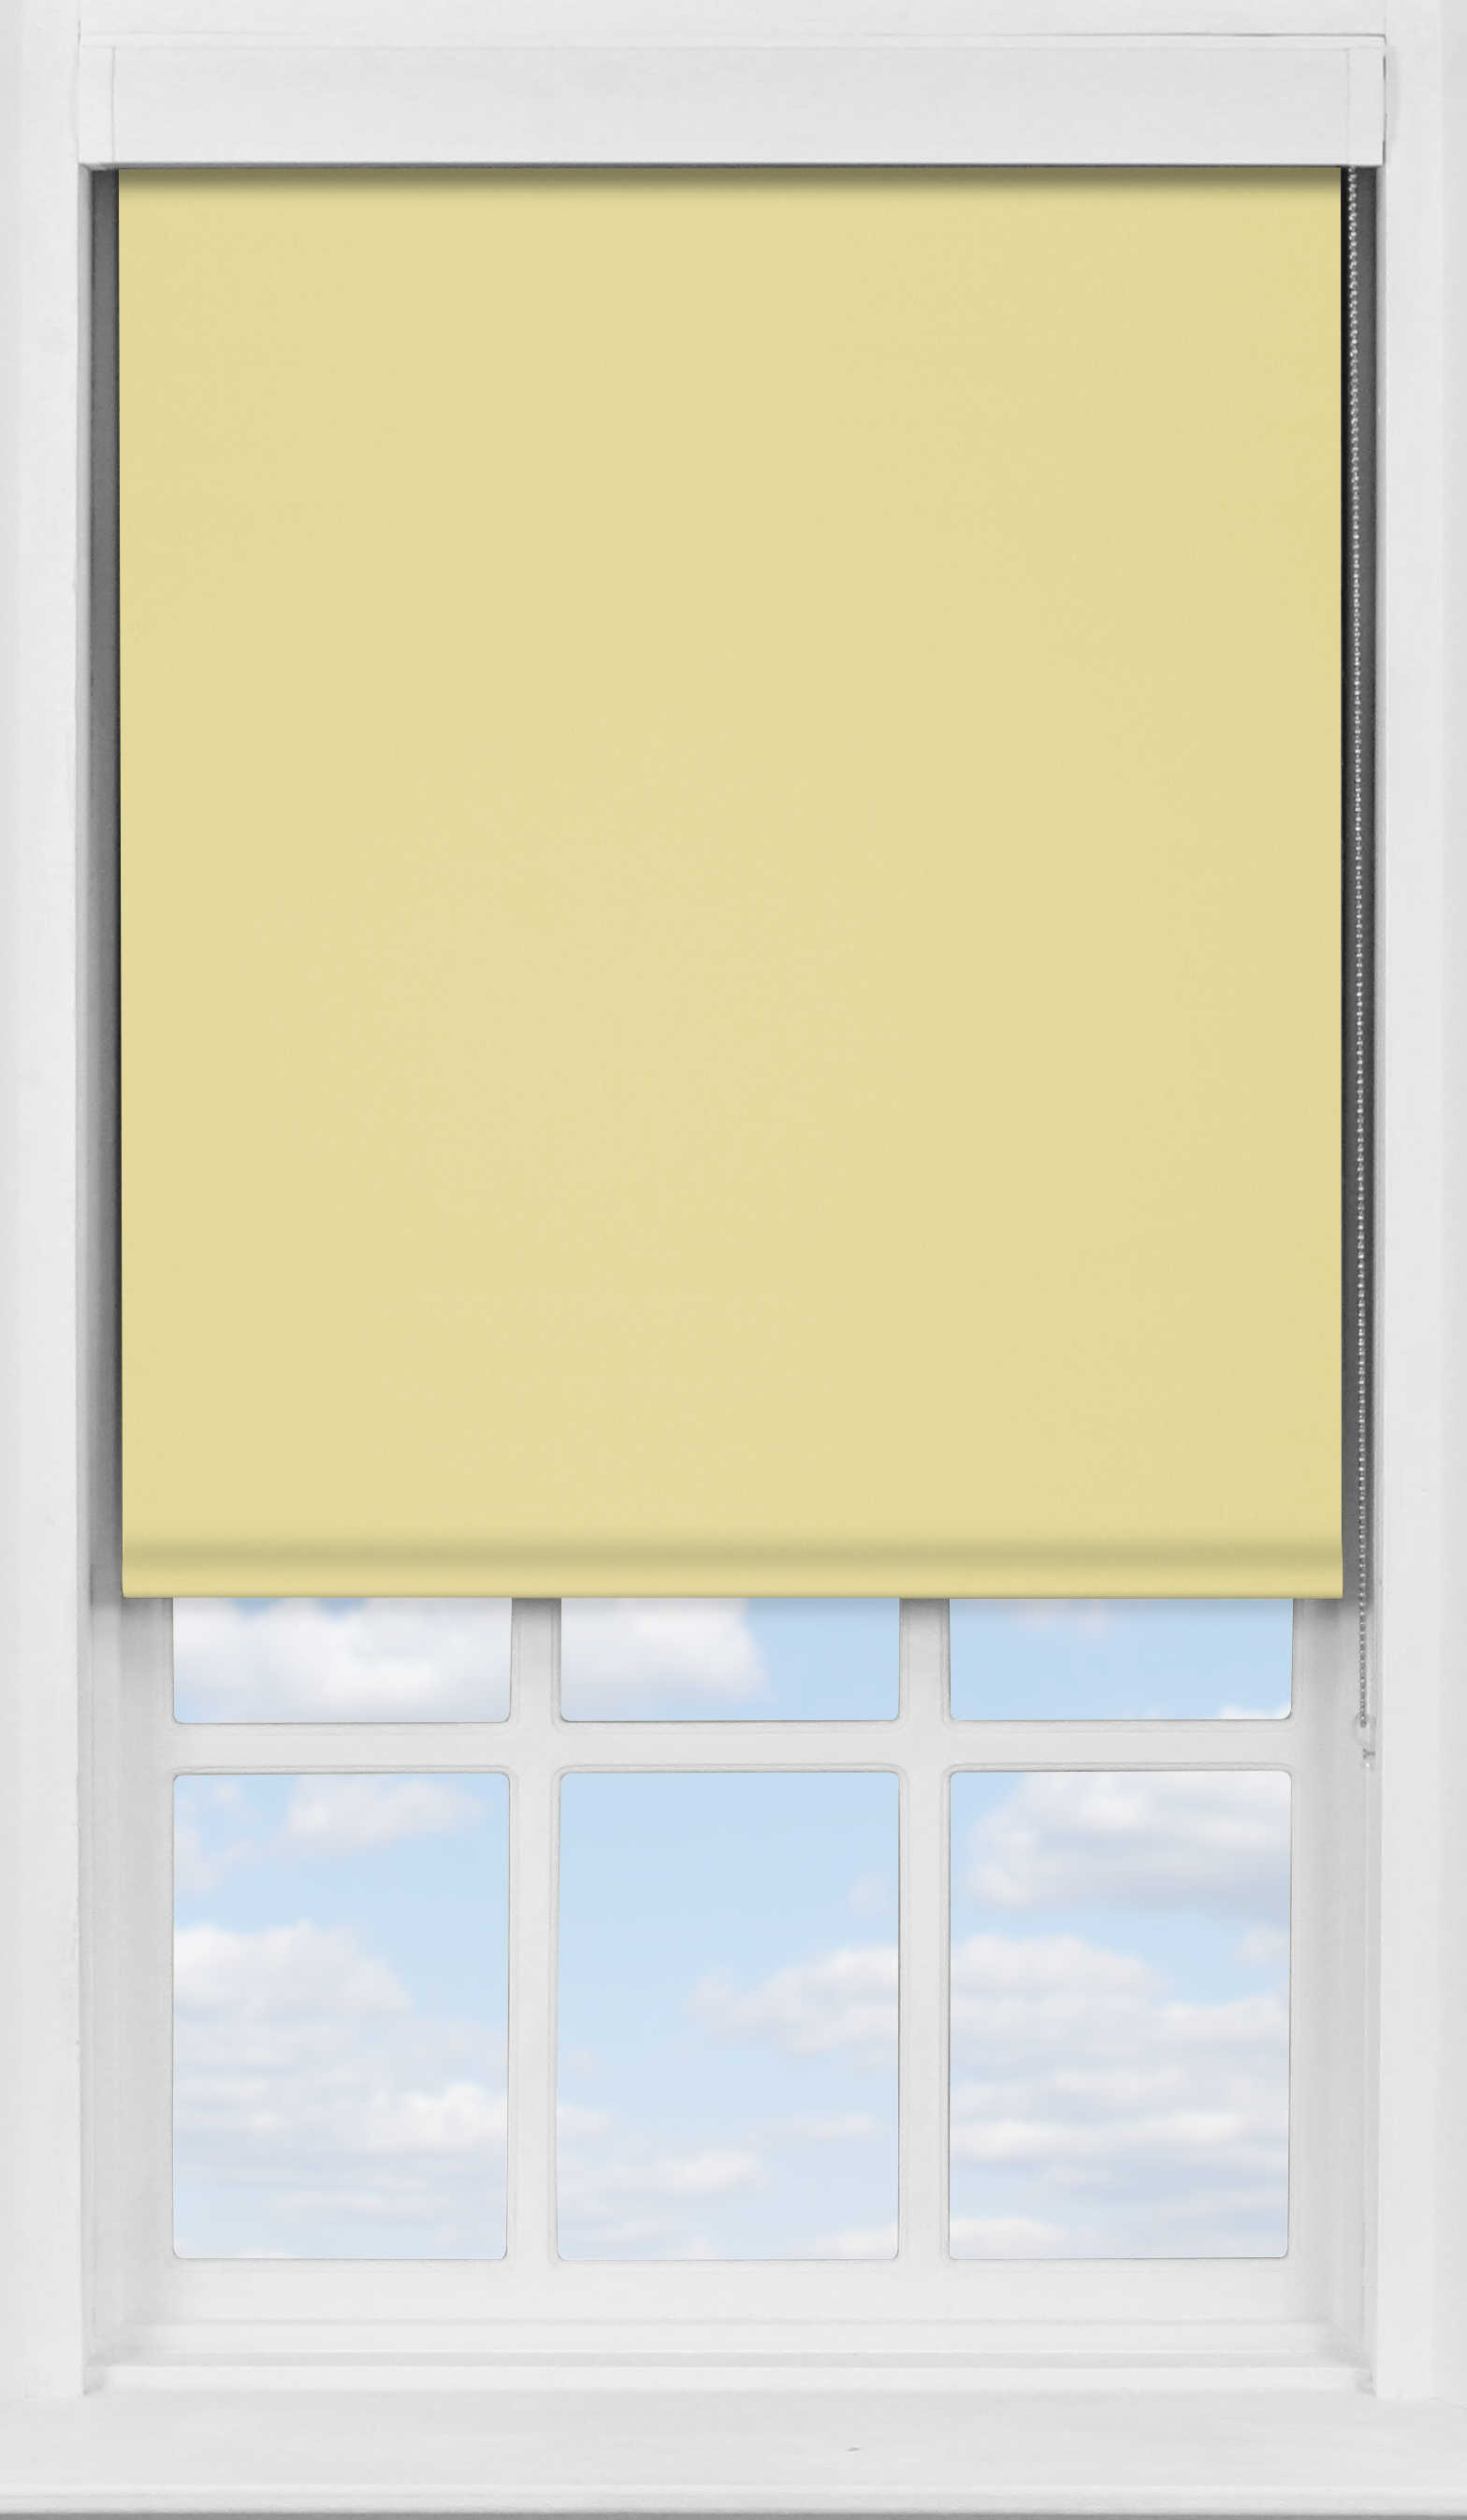 Premium Roller Blind in Daffodil Yellow Translucent